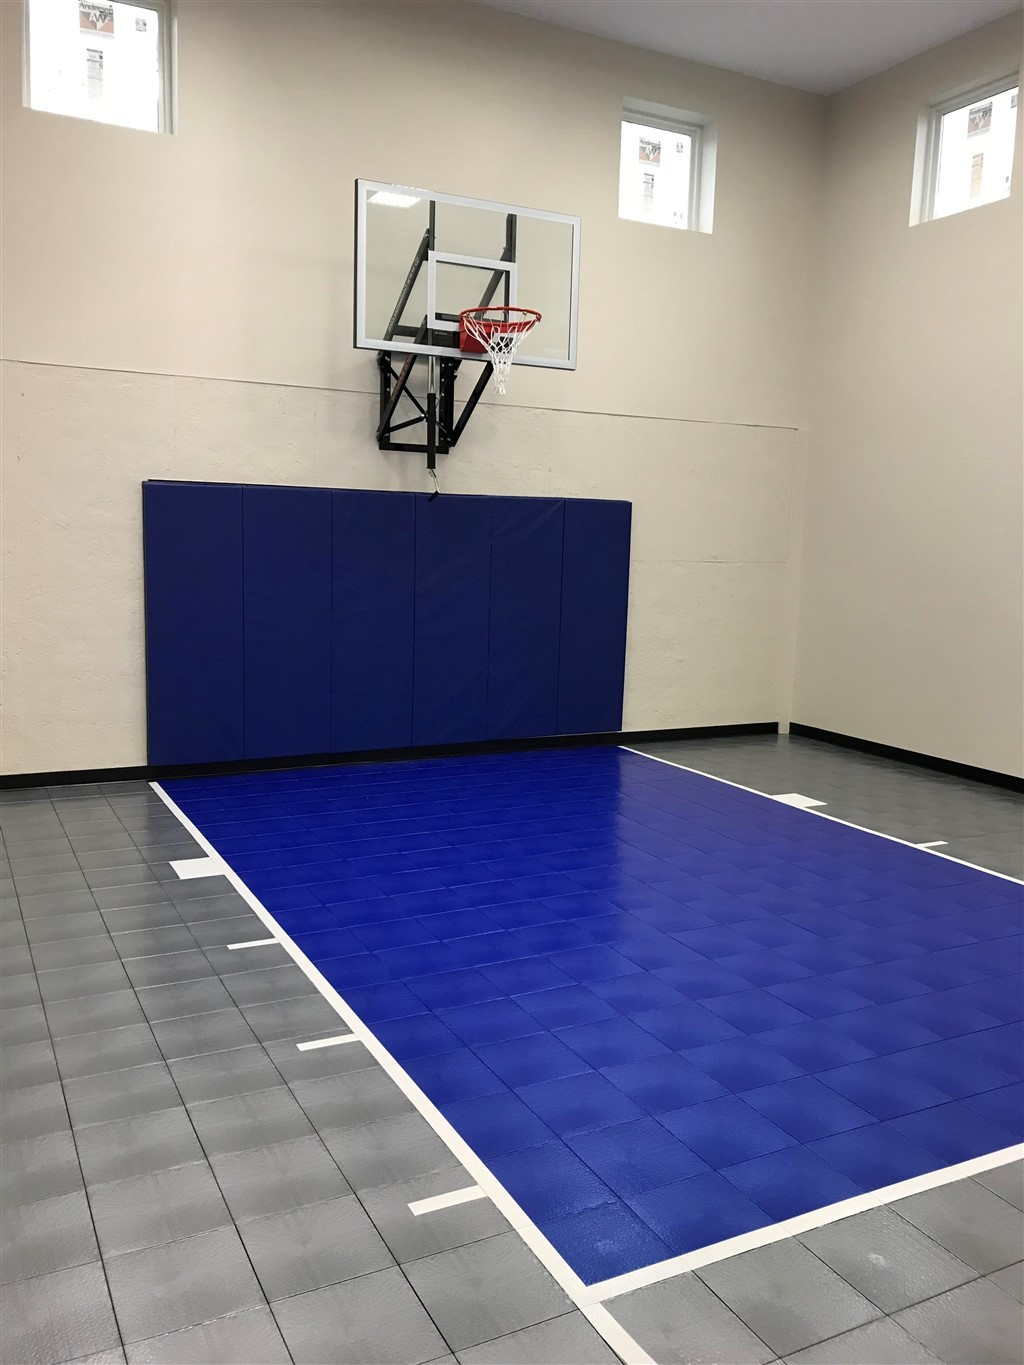 Millz House installed this indoor game court utilizing SnapSports athletic flooring tiles